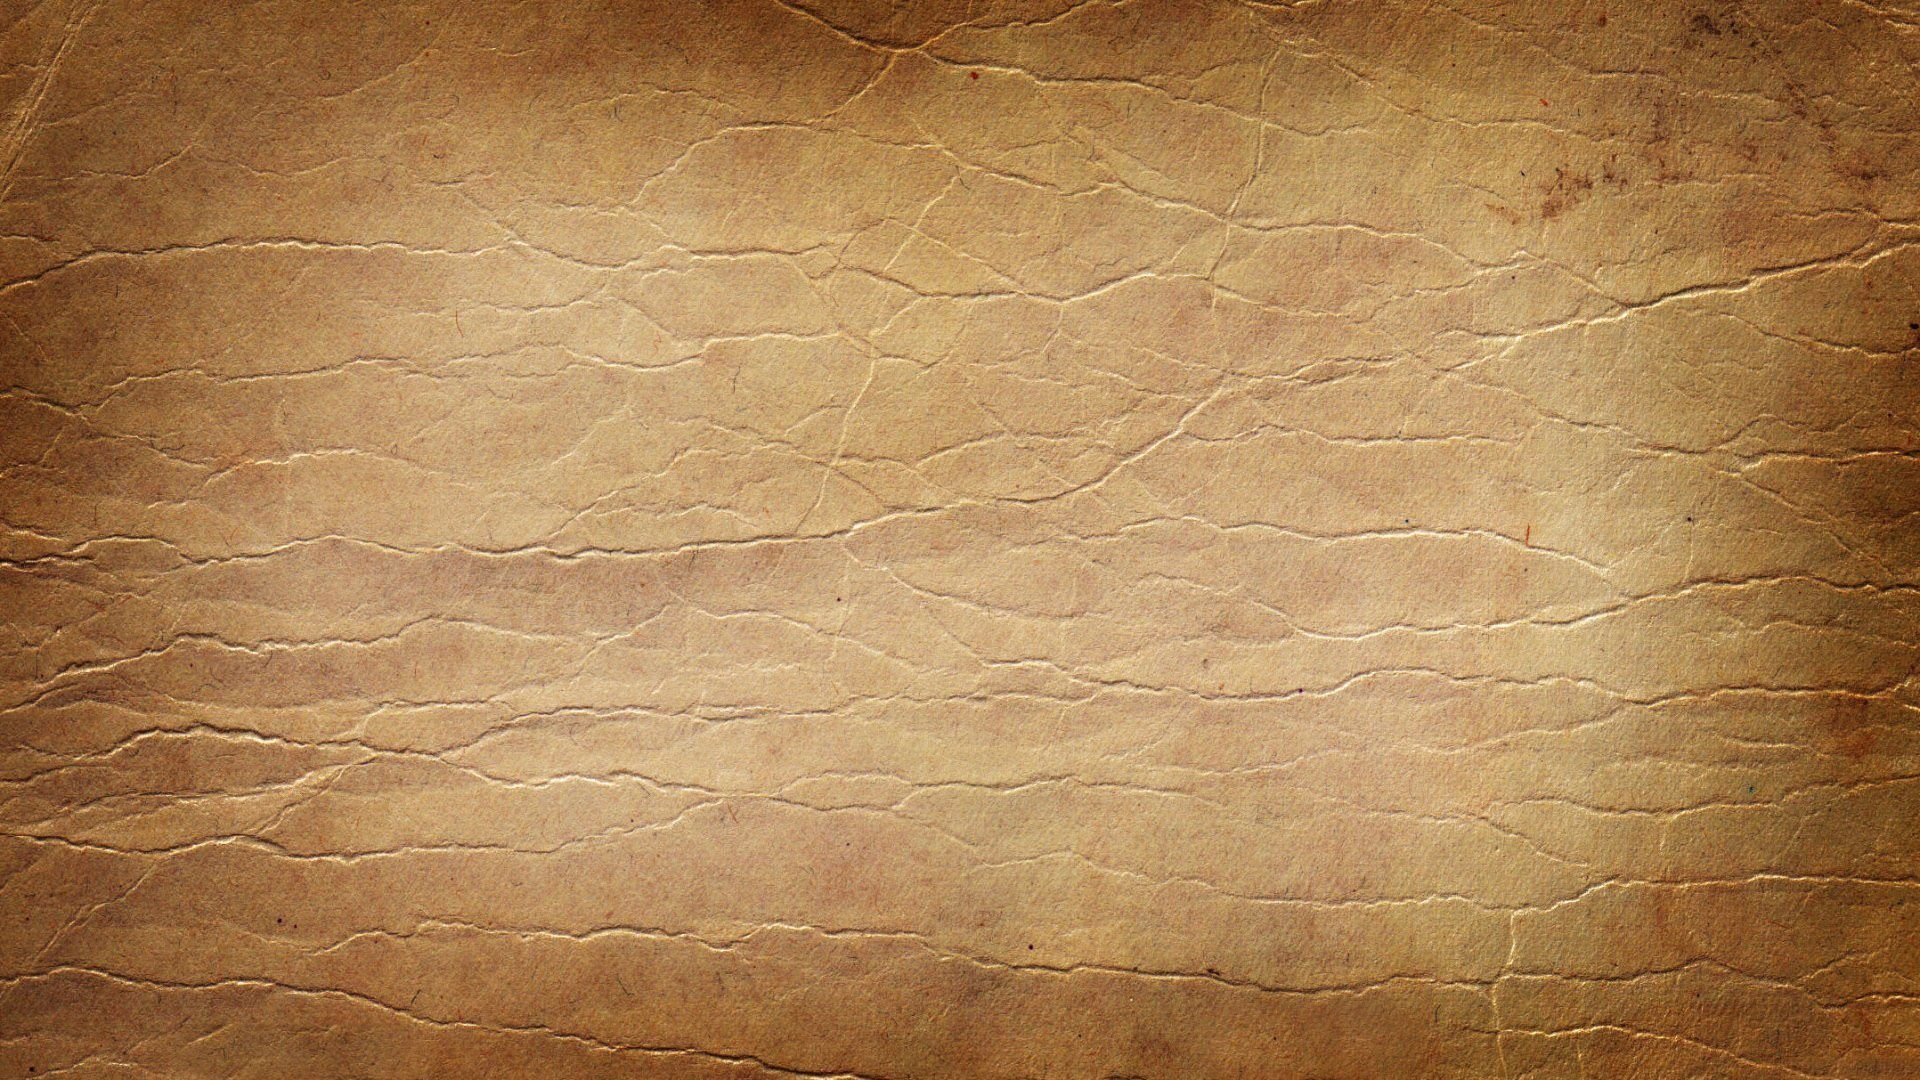 1920x1080 Paper Texture Backgrounds Wallpaper Preview | Backgrounds ...